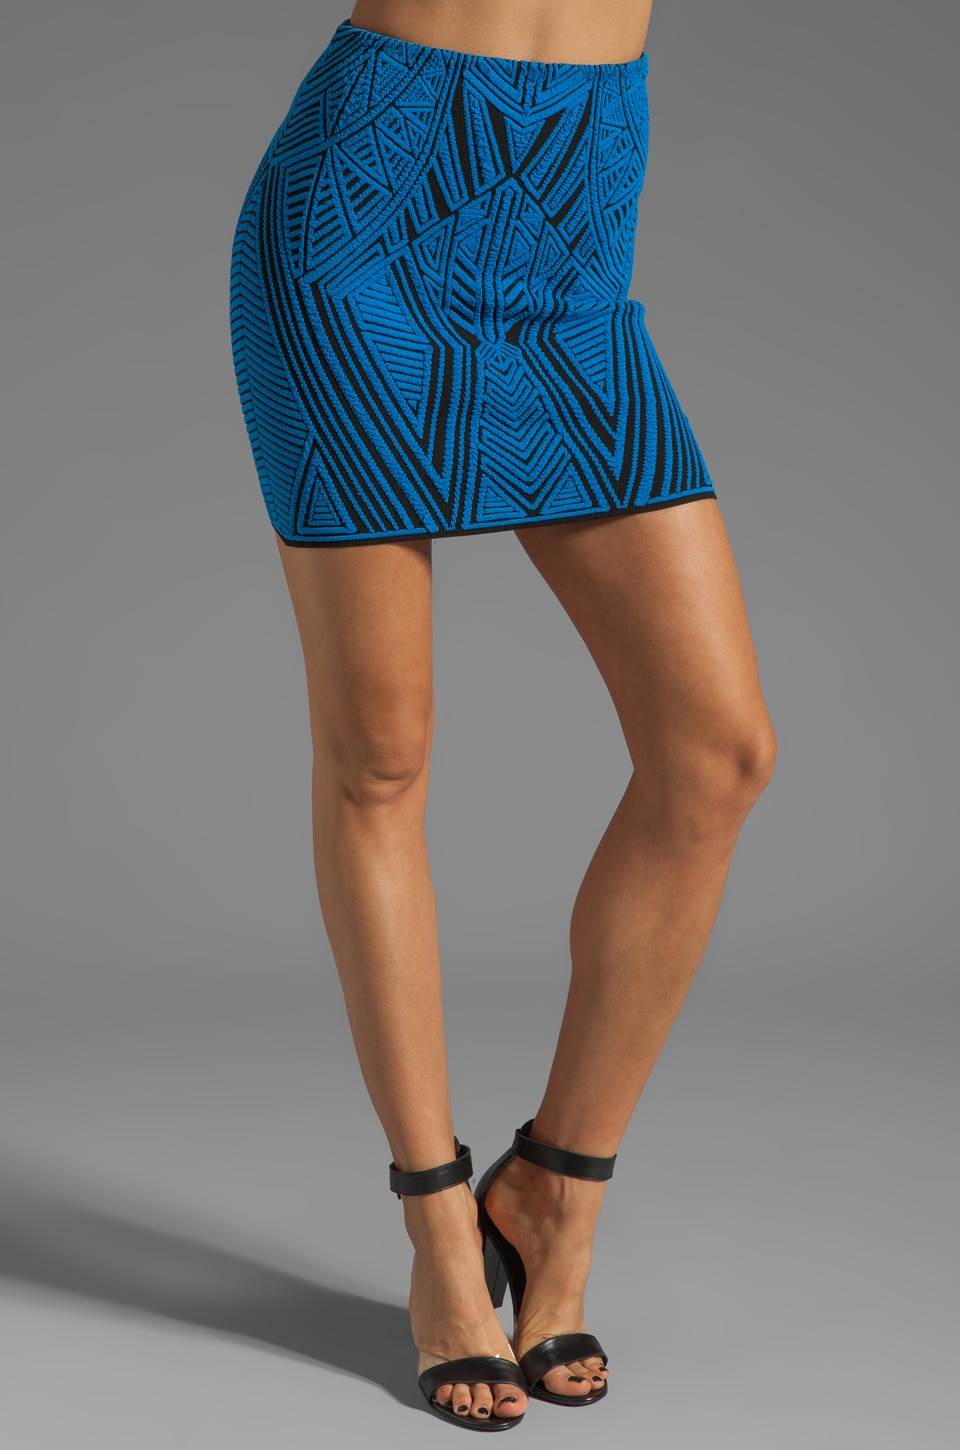 RVN Aztec Jacquard Skirt in Blue/Black